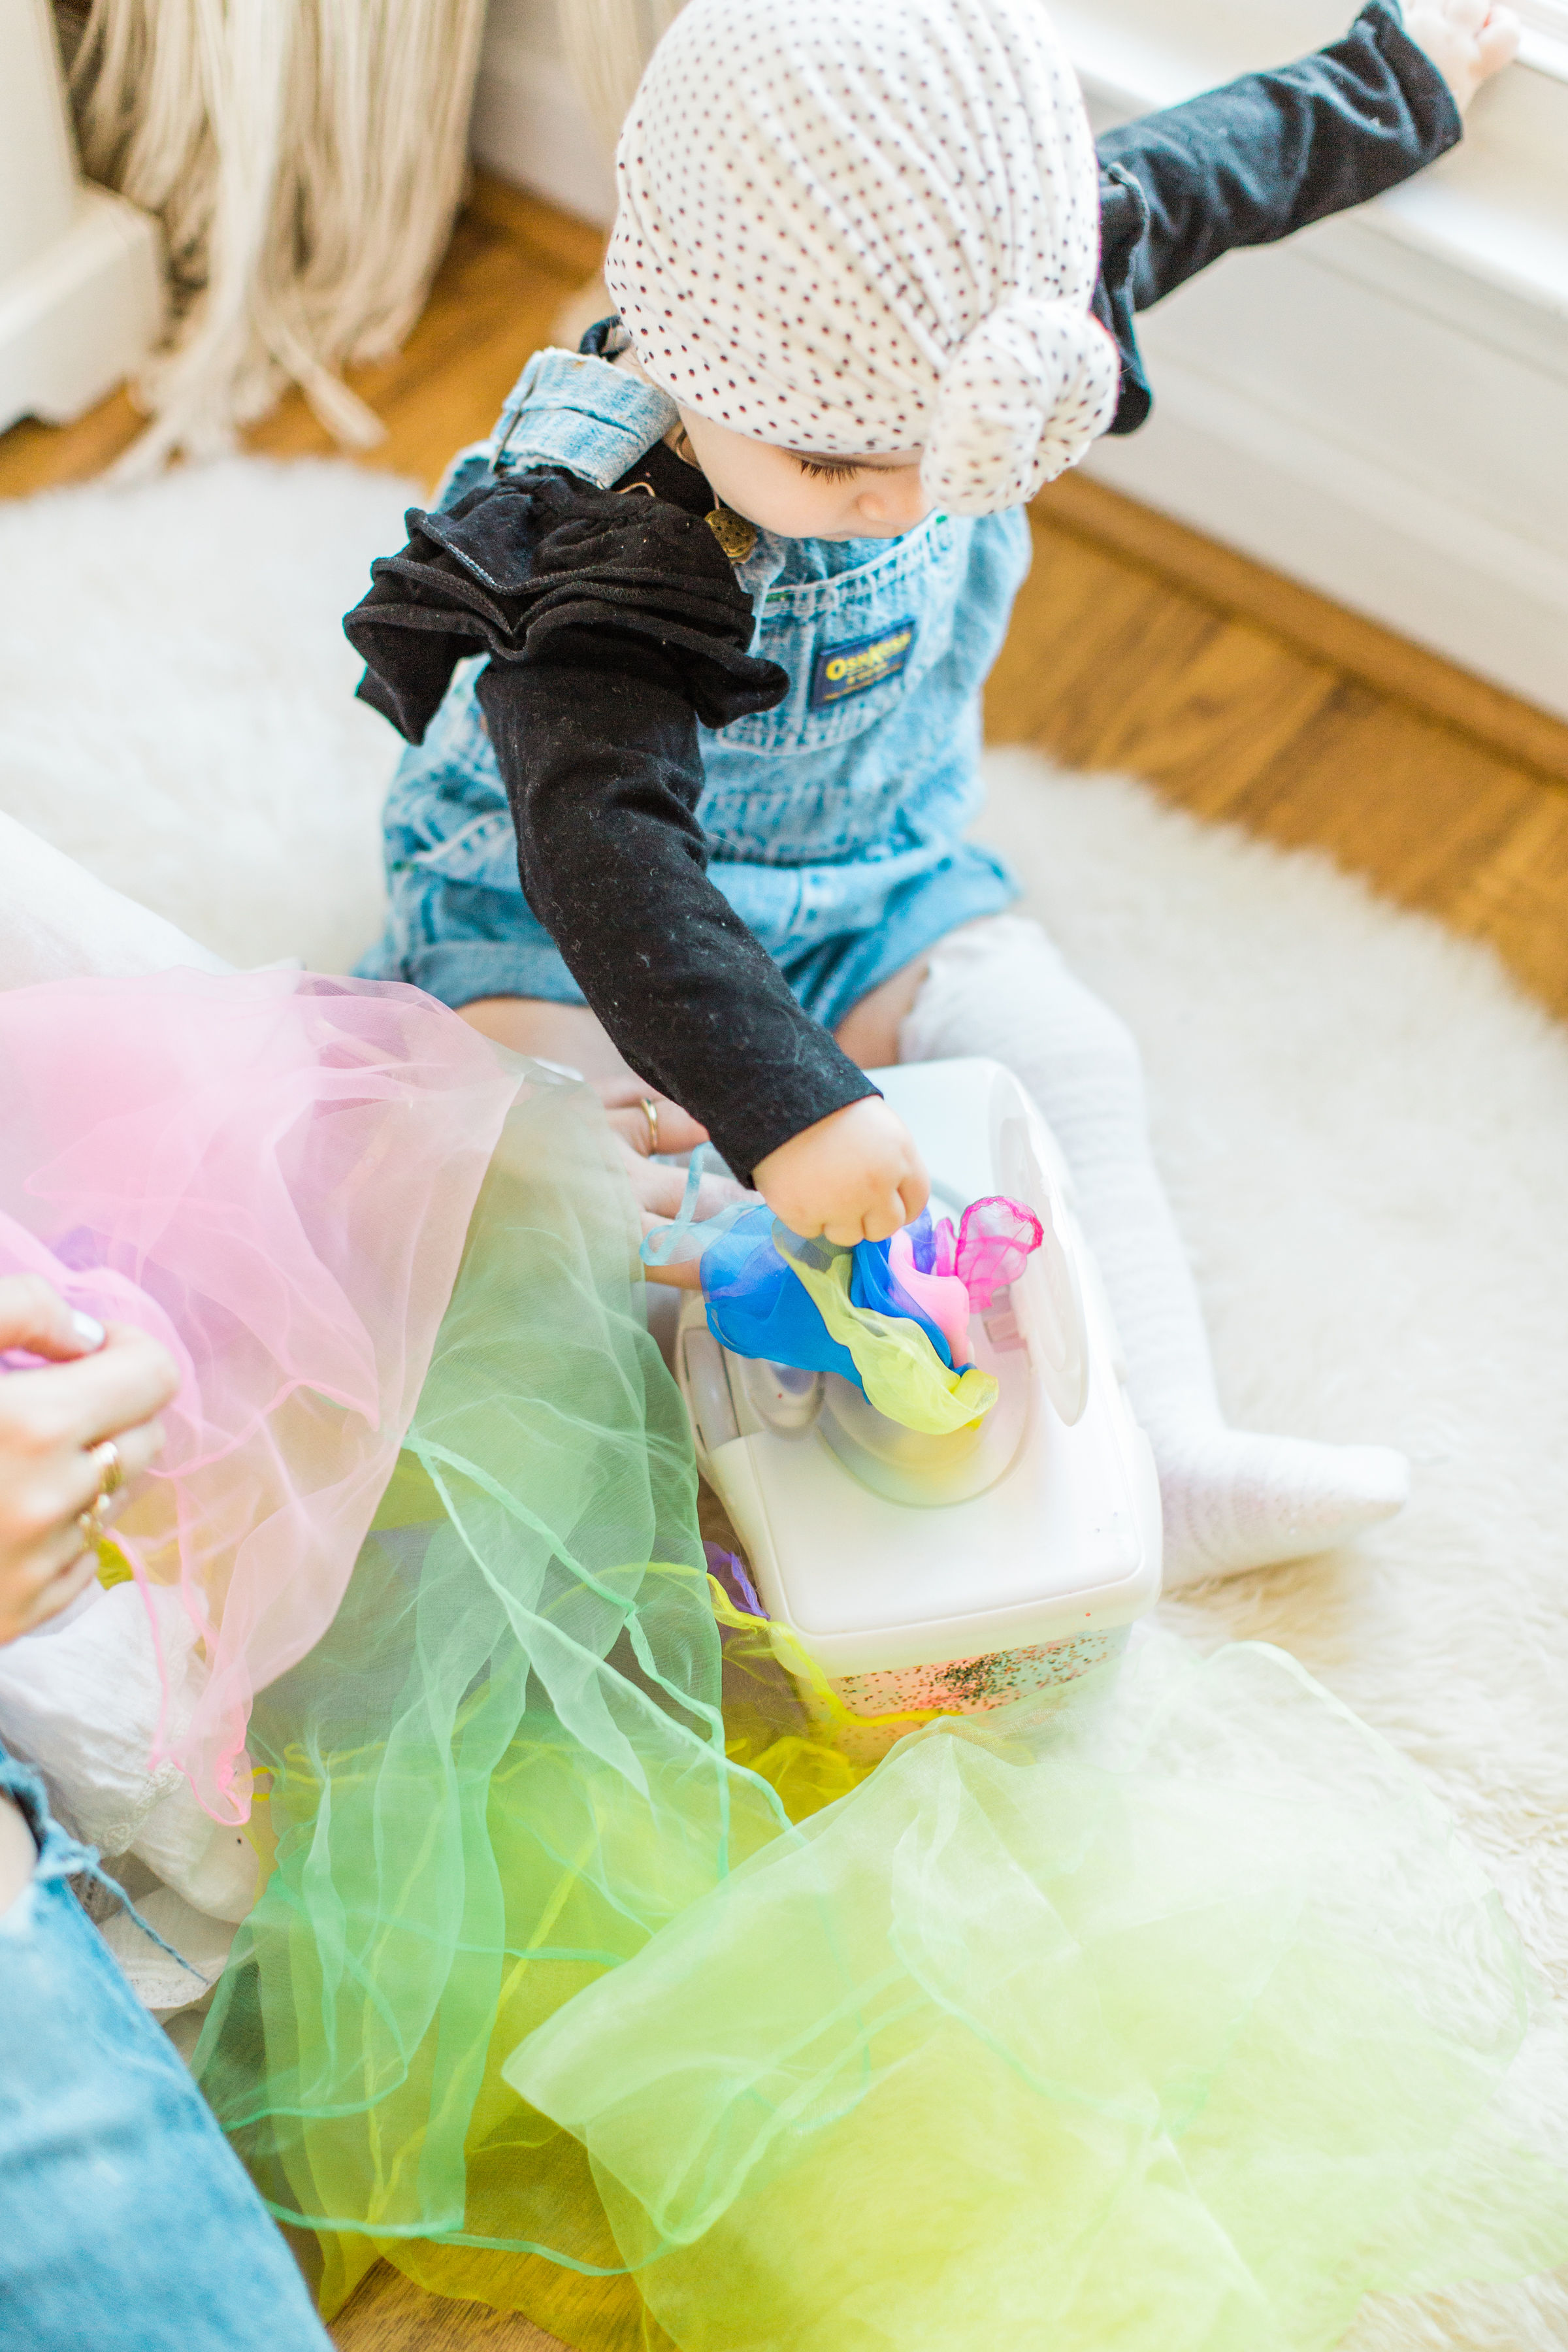 Looking for a fun activity to do with your baby? Make an easy, magic sensory toy using an empty wipes container and inexpensive colorful scarves. | Click through for the DIY. | glitterinc.com | @glitterinc